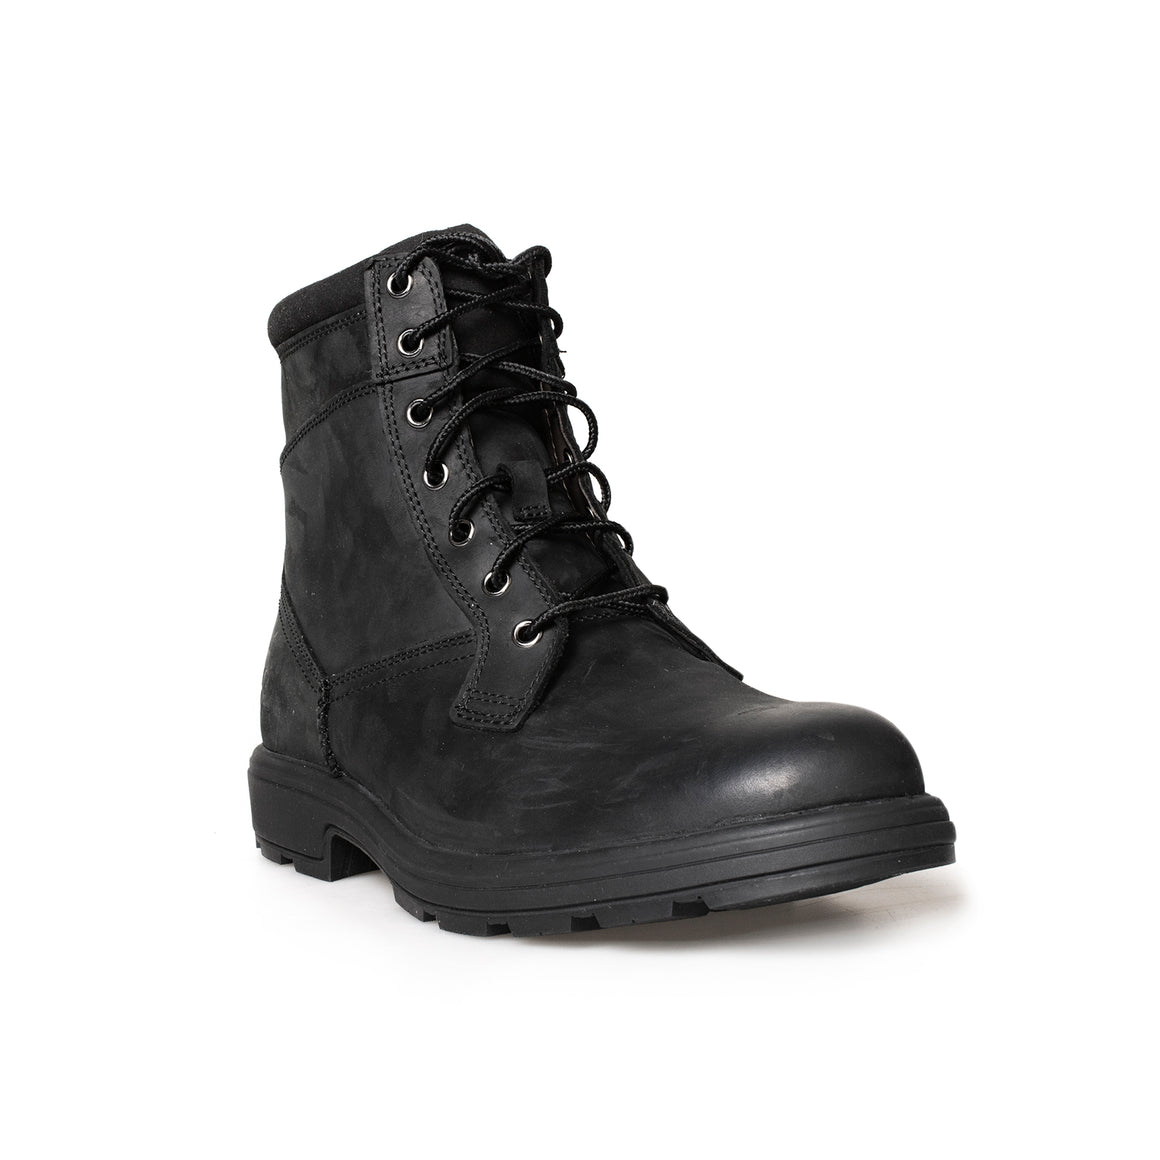 UGG Biltmore Black Workboots - Men's